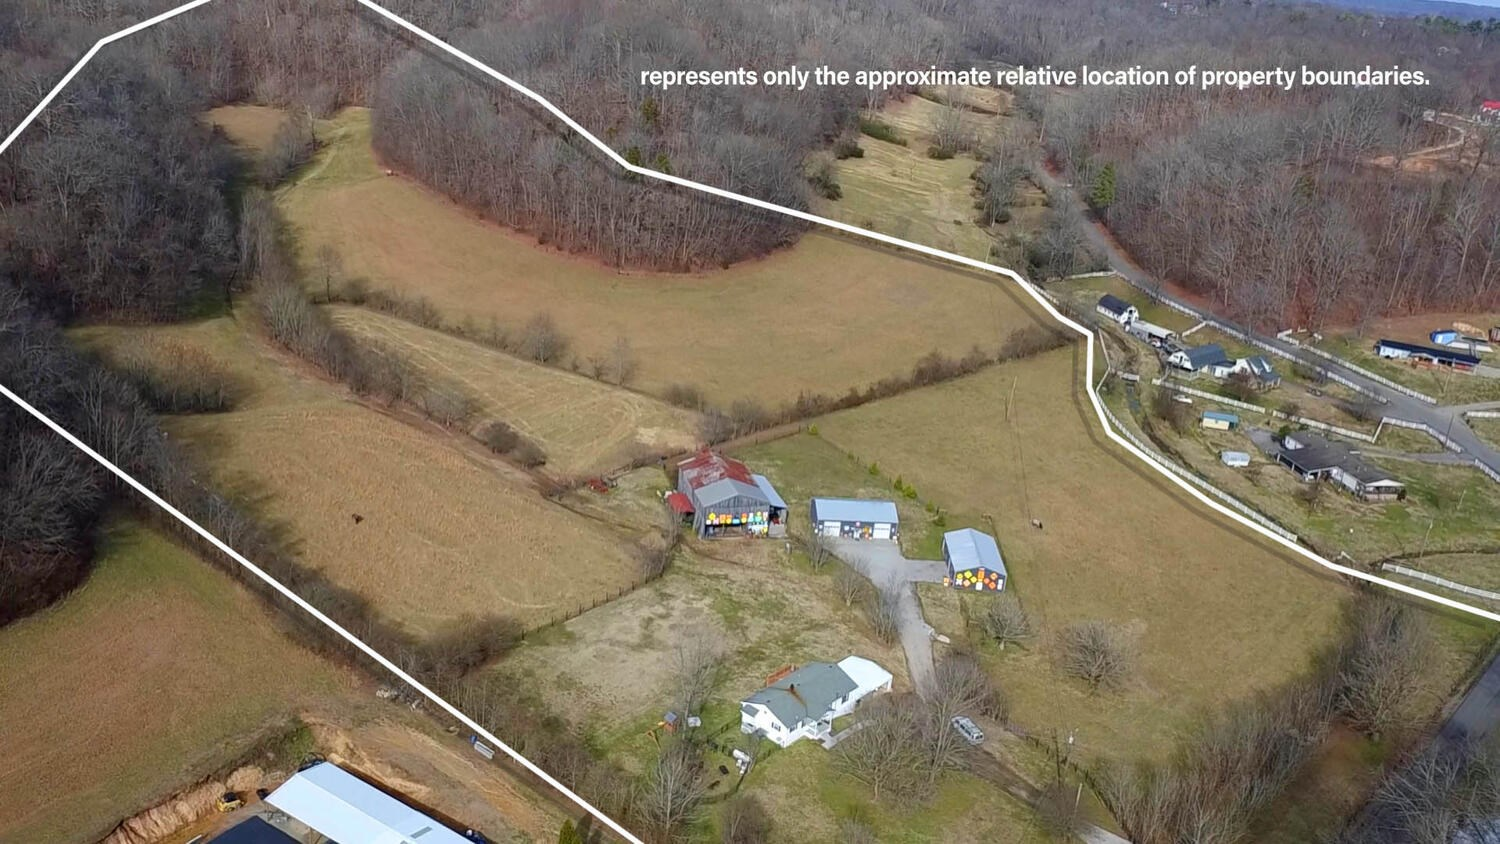 46 Acre Horse Property Country Cottage for sale in Middle TN